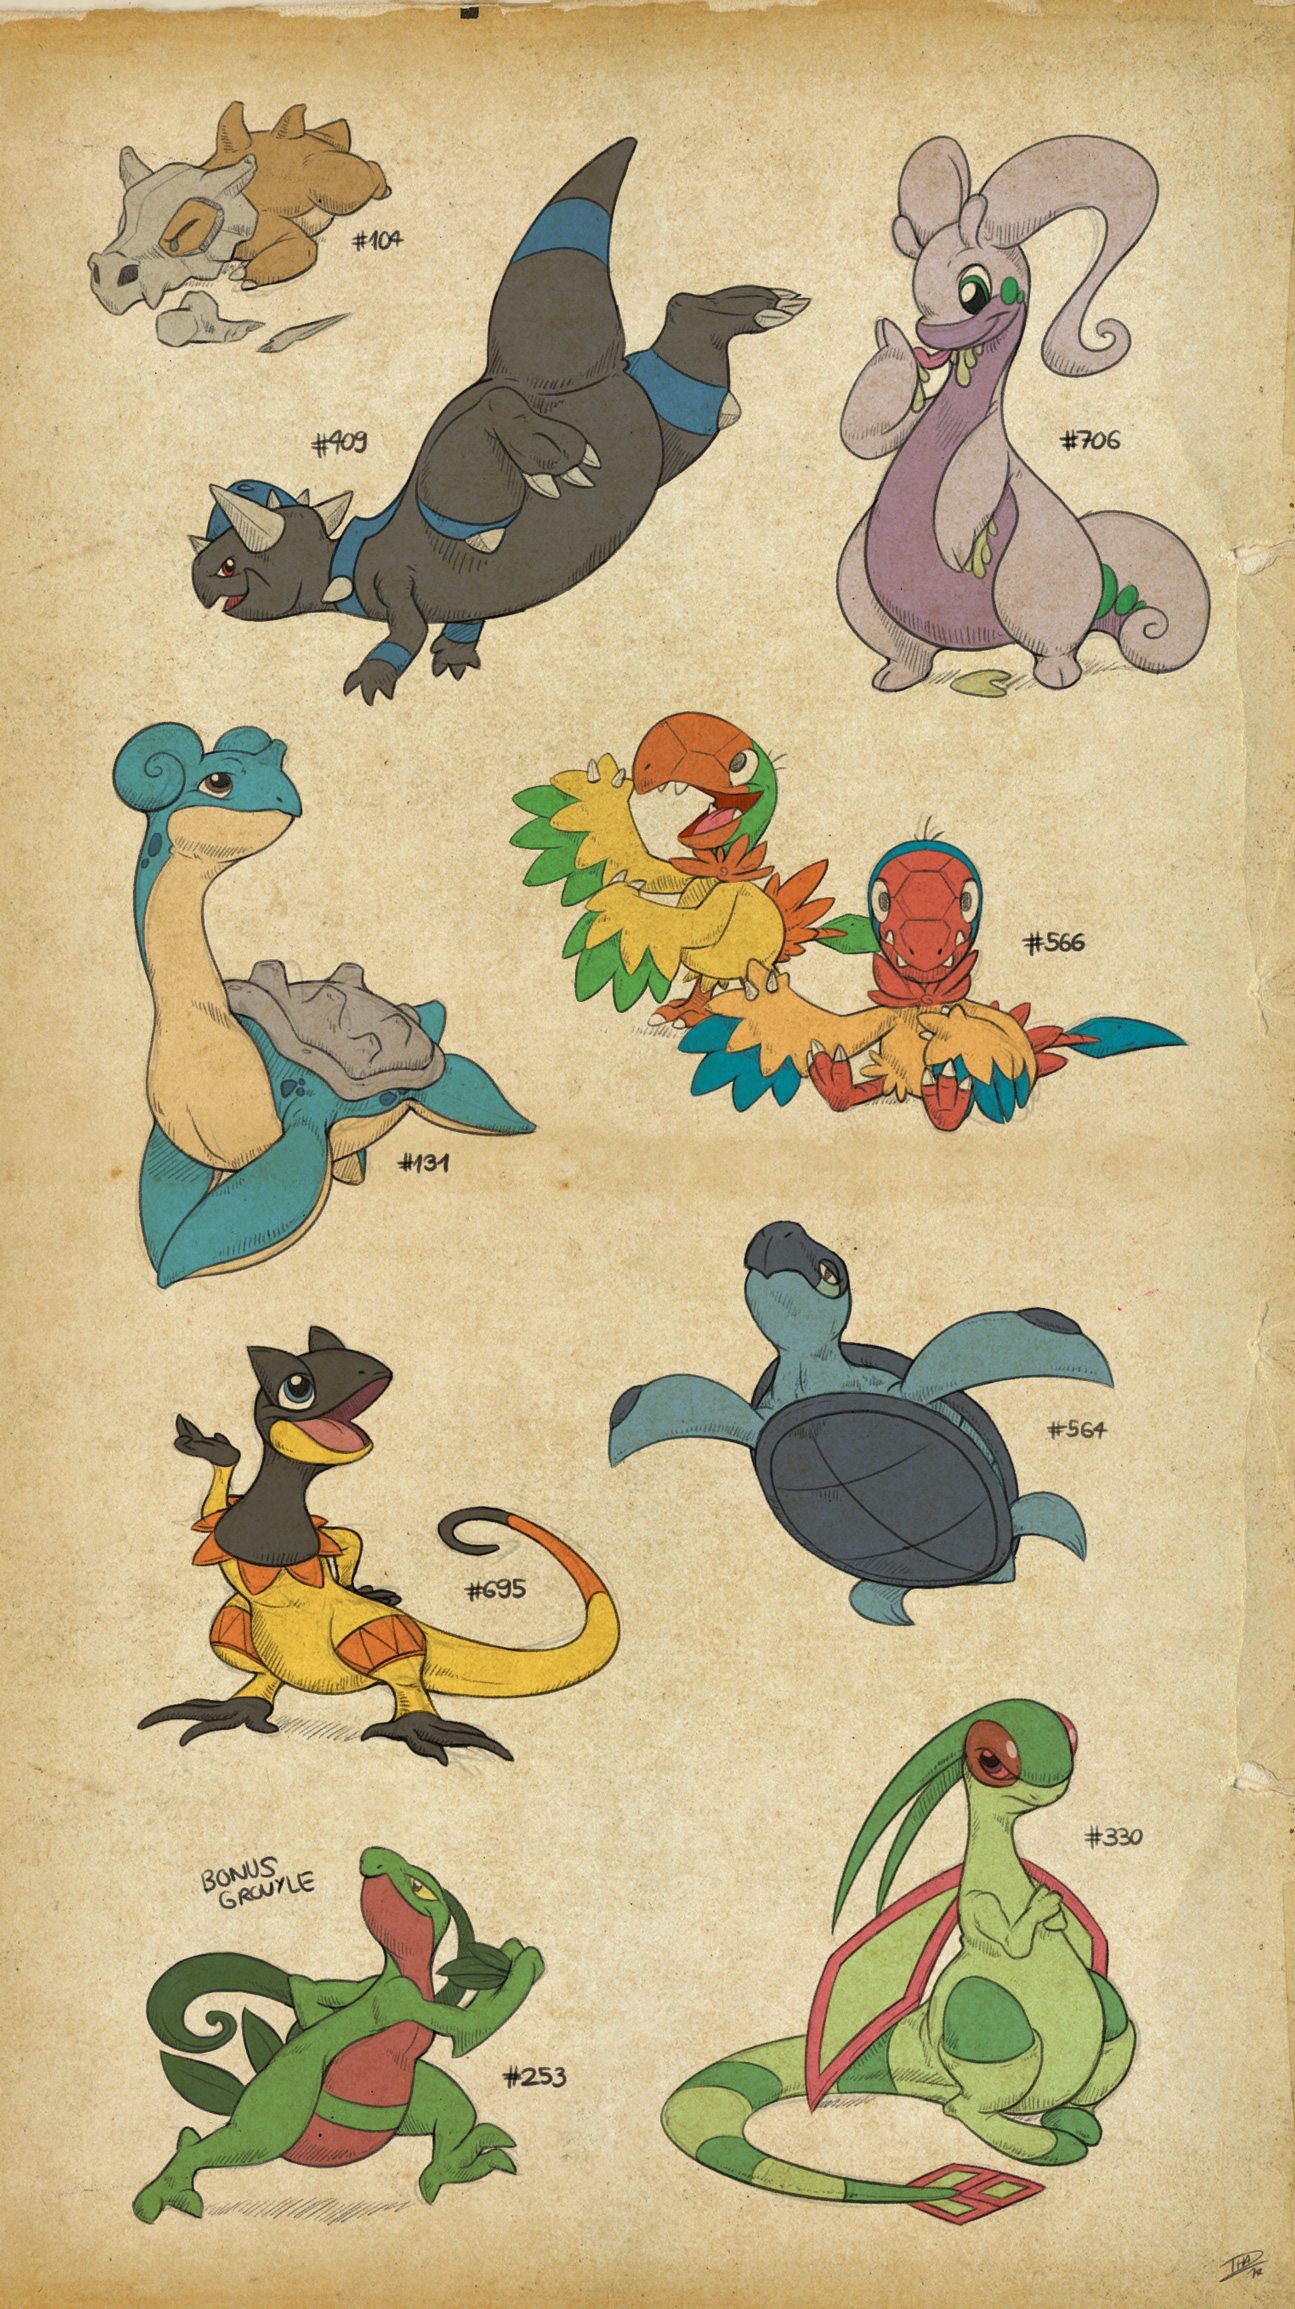 Lizard Pokesketch Batch 2 by thazumi